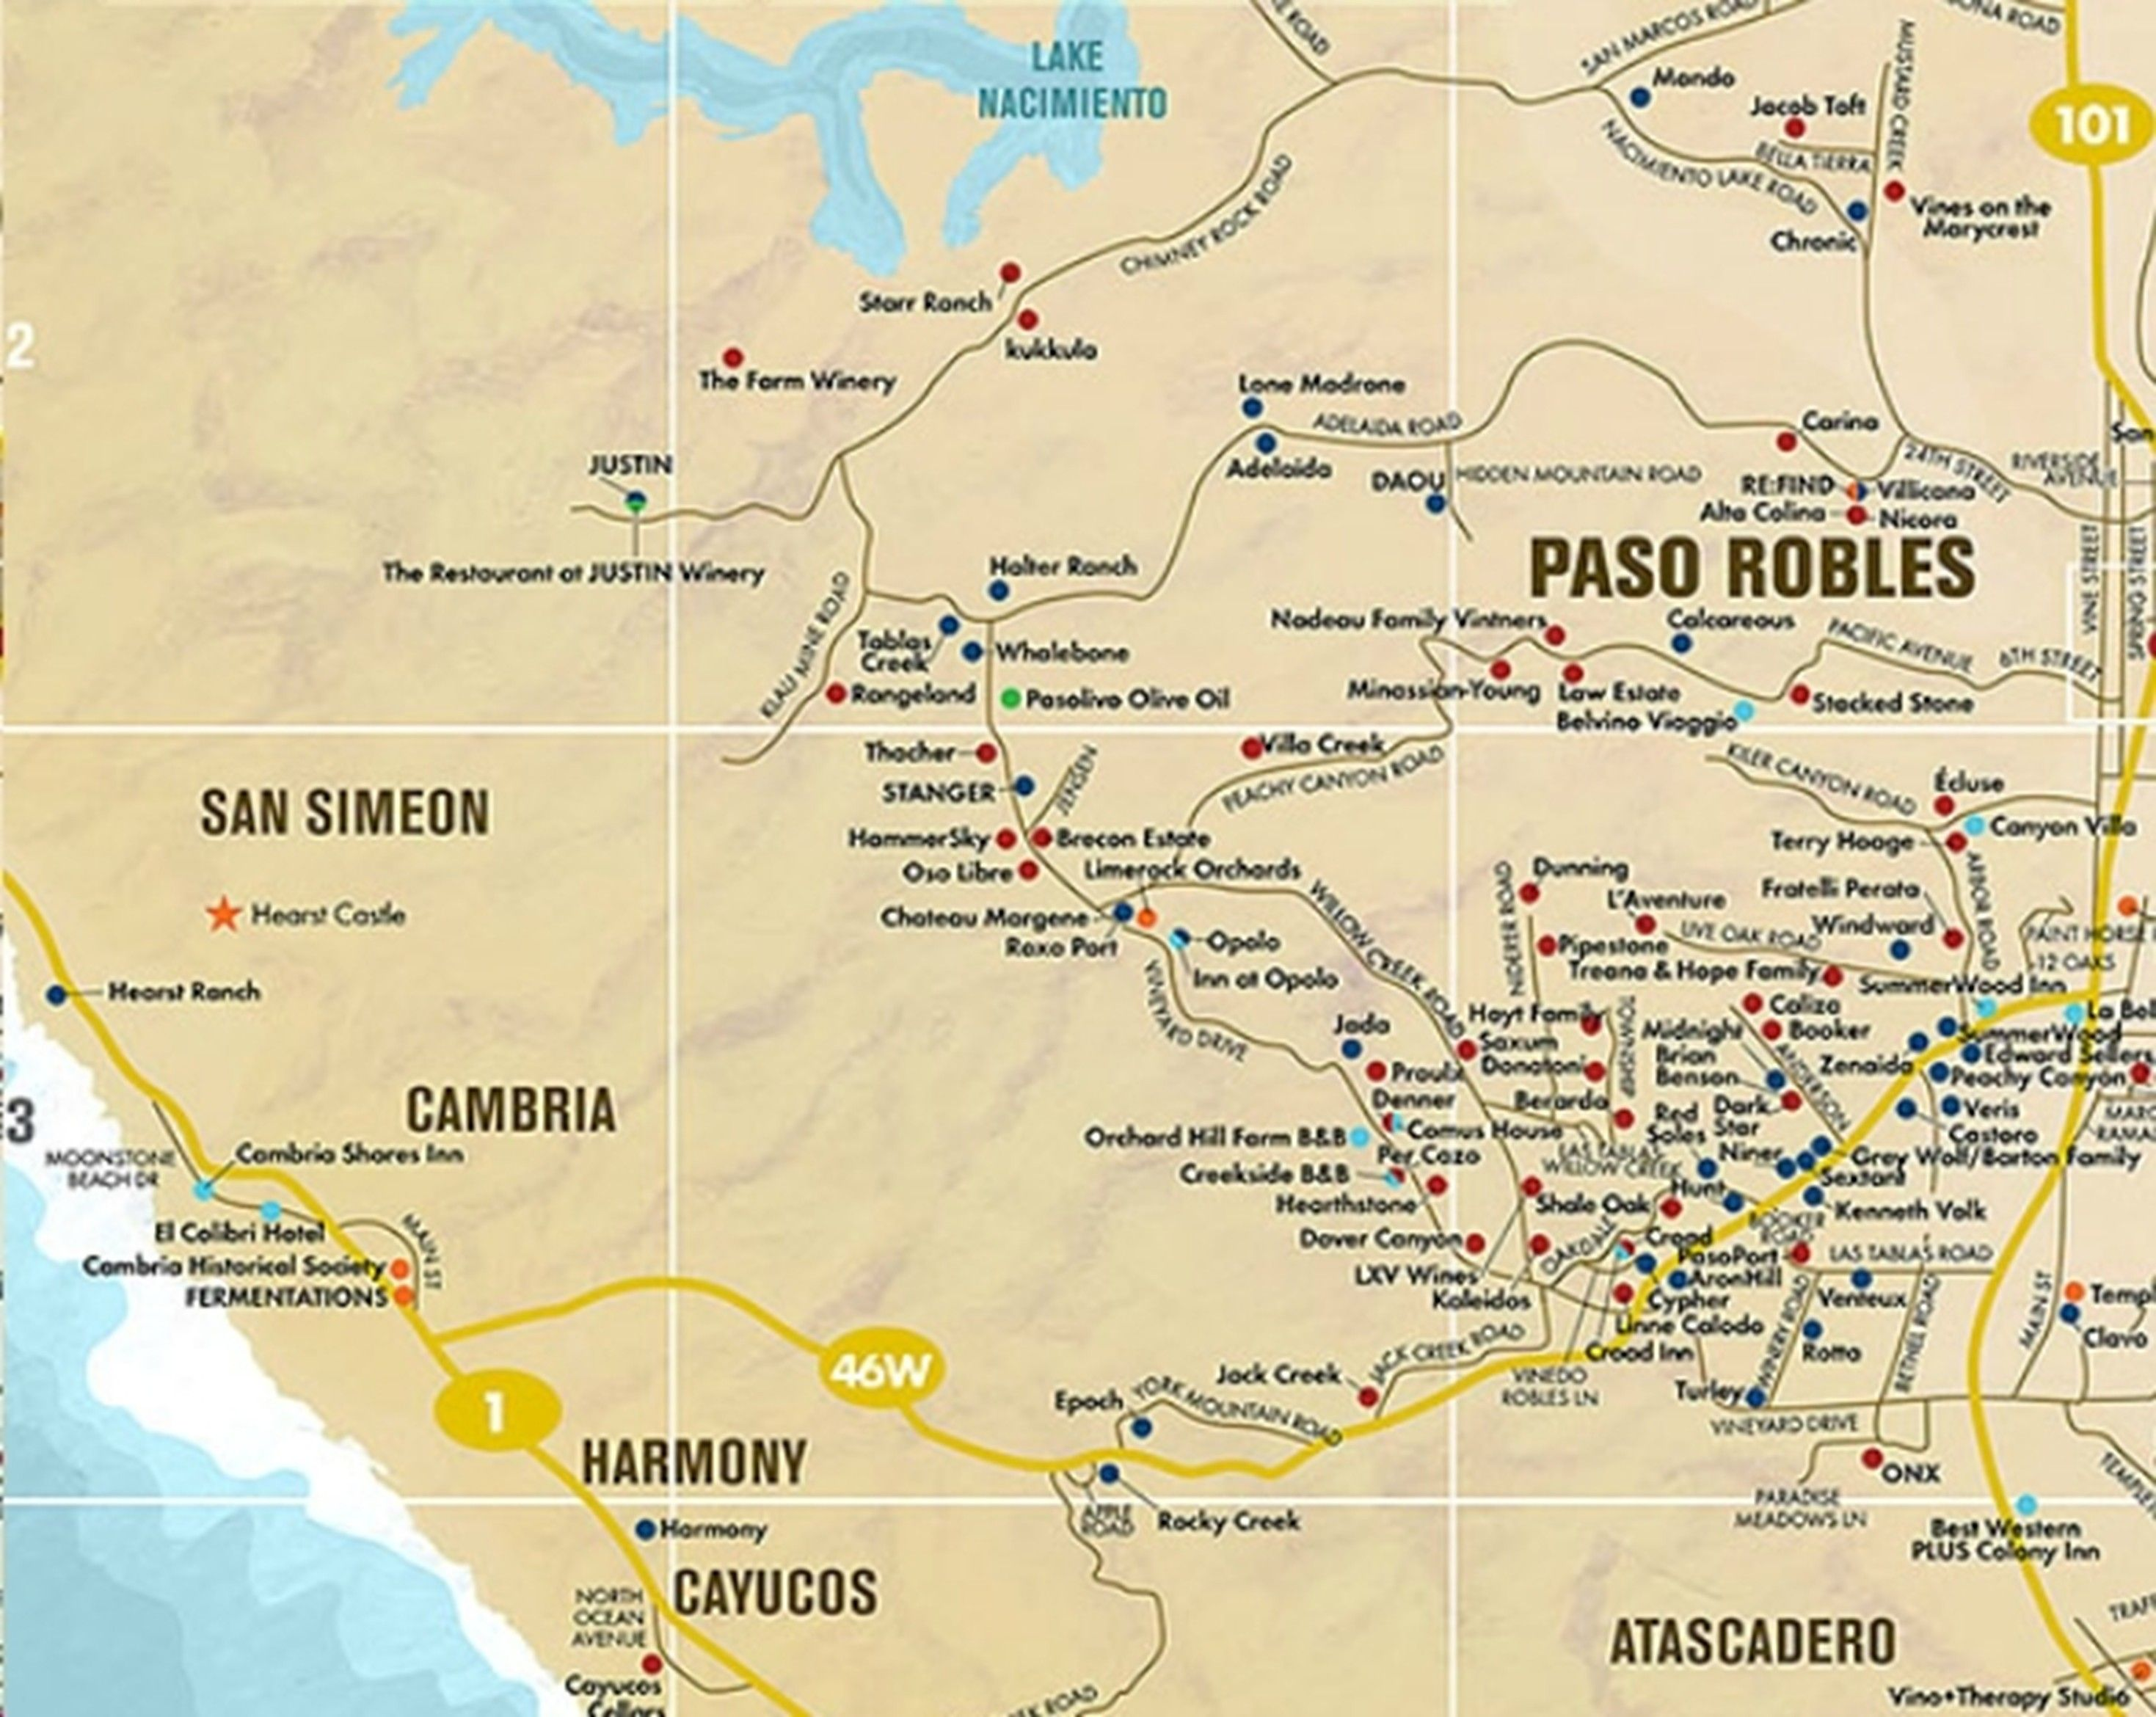 Paso Robles Wineries Map Paso Robles Area Wine Tasting Map | Future Travels | Paso robles